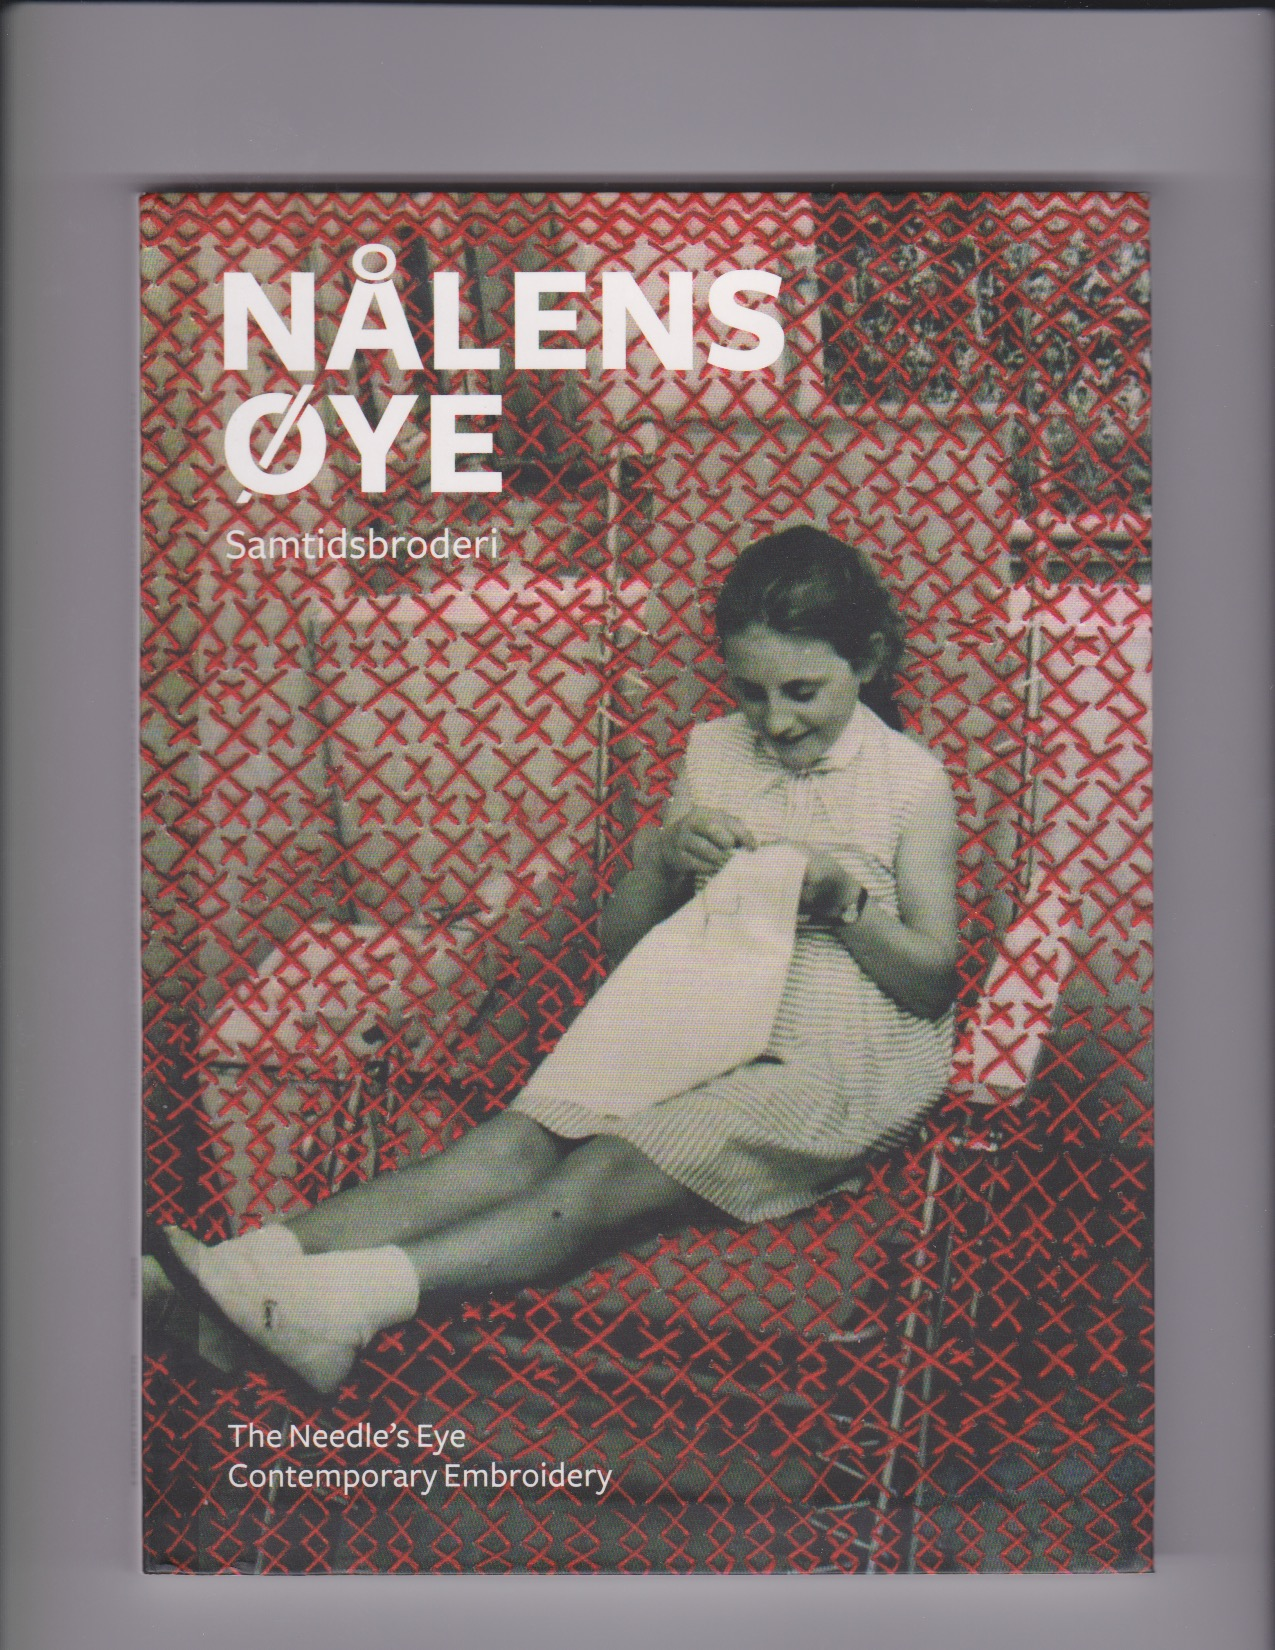 Nalens cover.jpeg